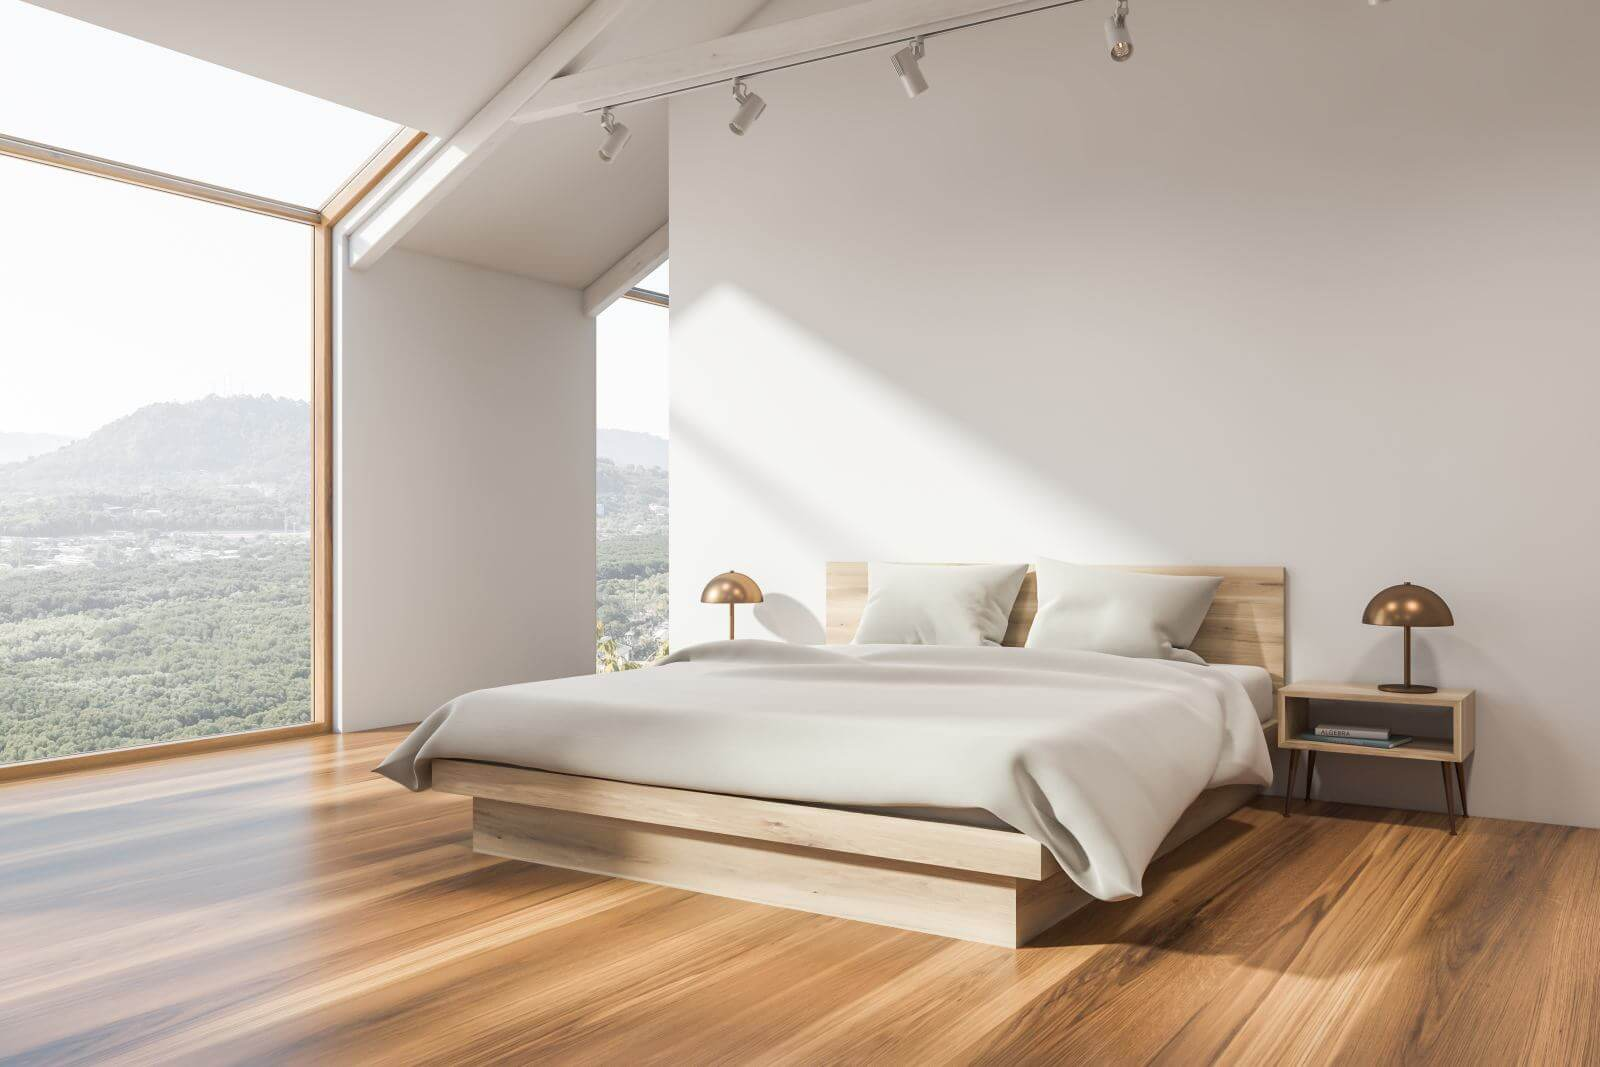 Corner of attic bedroom with white walls, wooden floor, master bed with white blanket and window with mountain view. 3d rendering